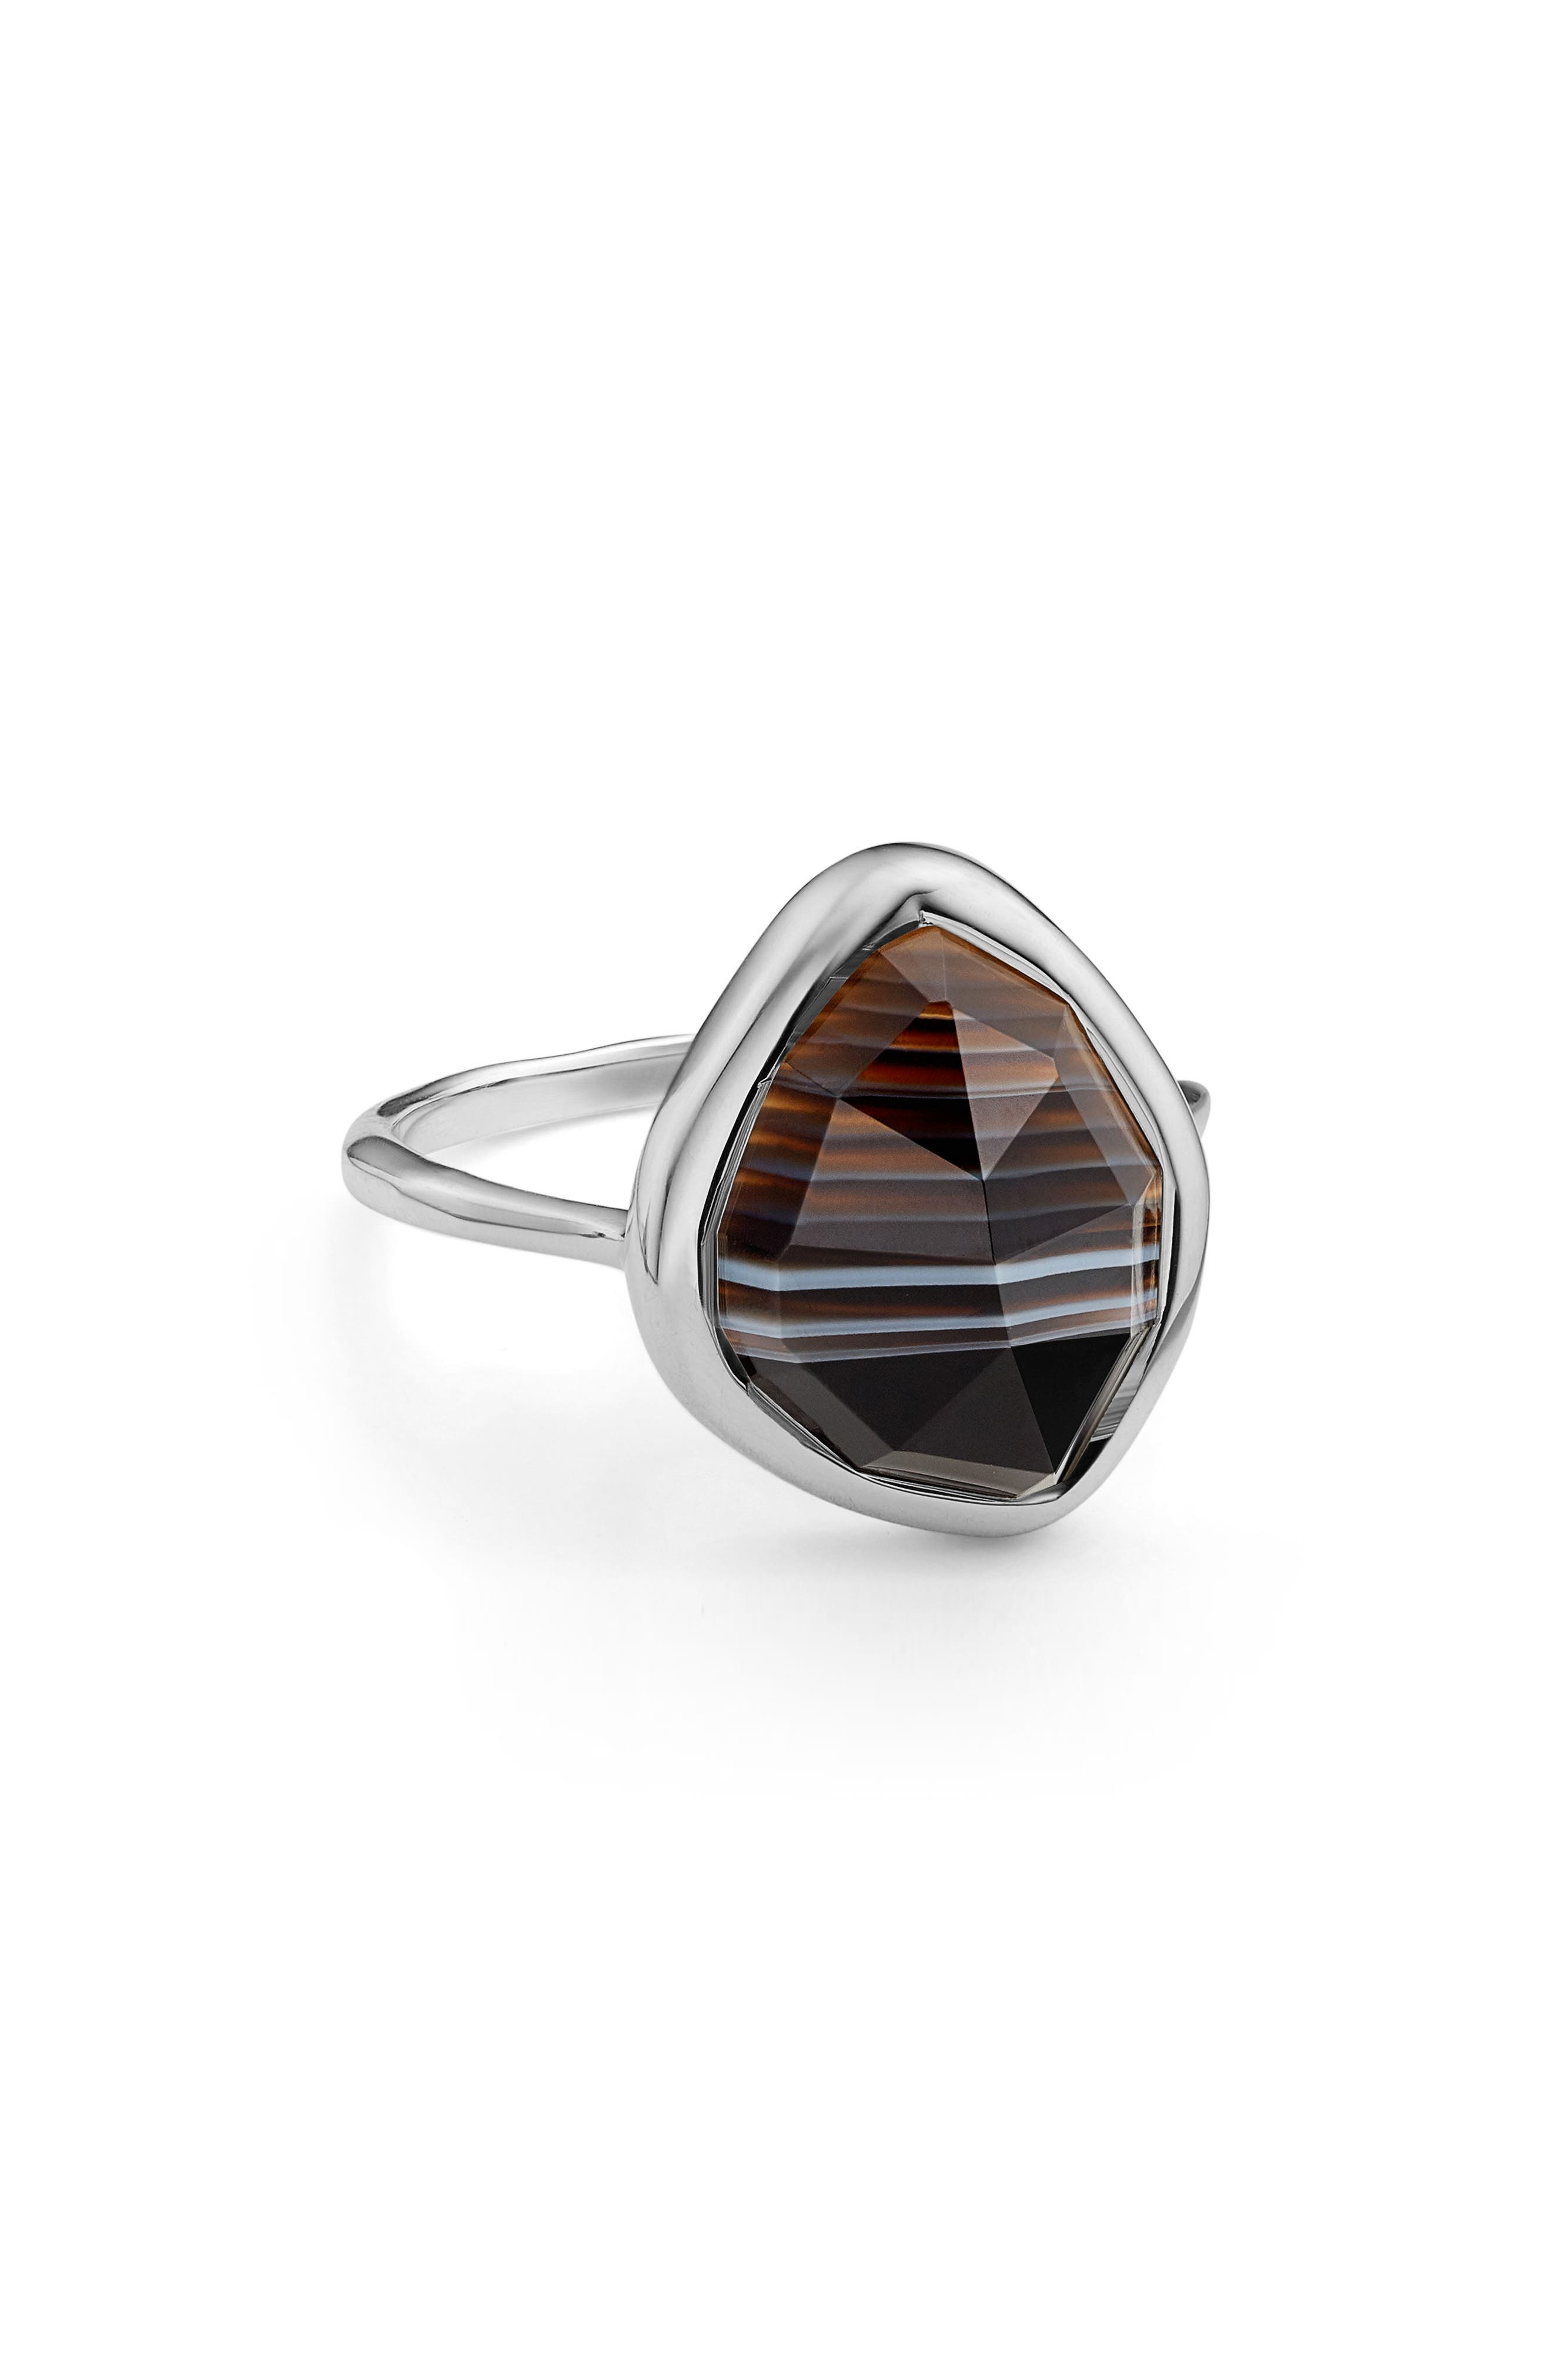 Siren Nugget Semiprecious Stacking Ring,                             Alternate thumbnail 3, color,                             Silver/ Black Line Onyx